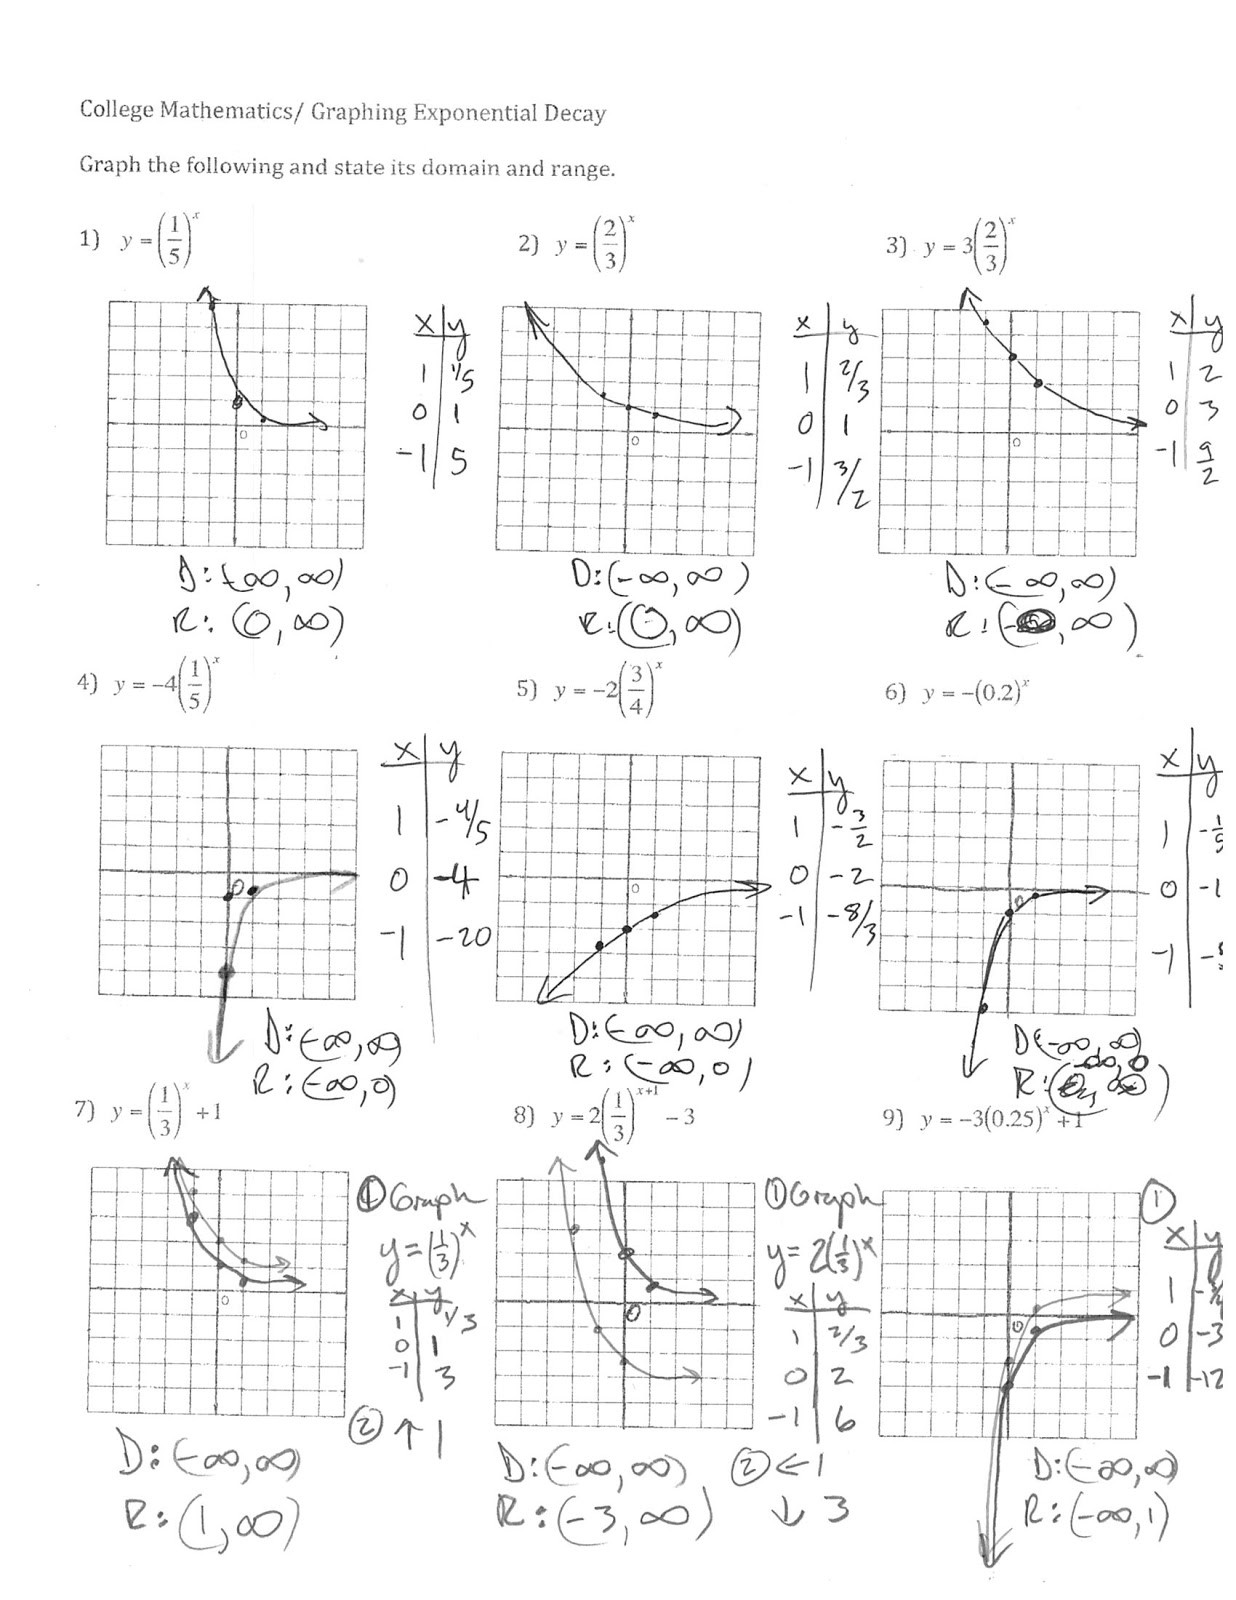 5th Grade Coordinate Grid Worksheets Graphing Drawing at Getdrawings Free Coordinate Plane